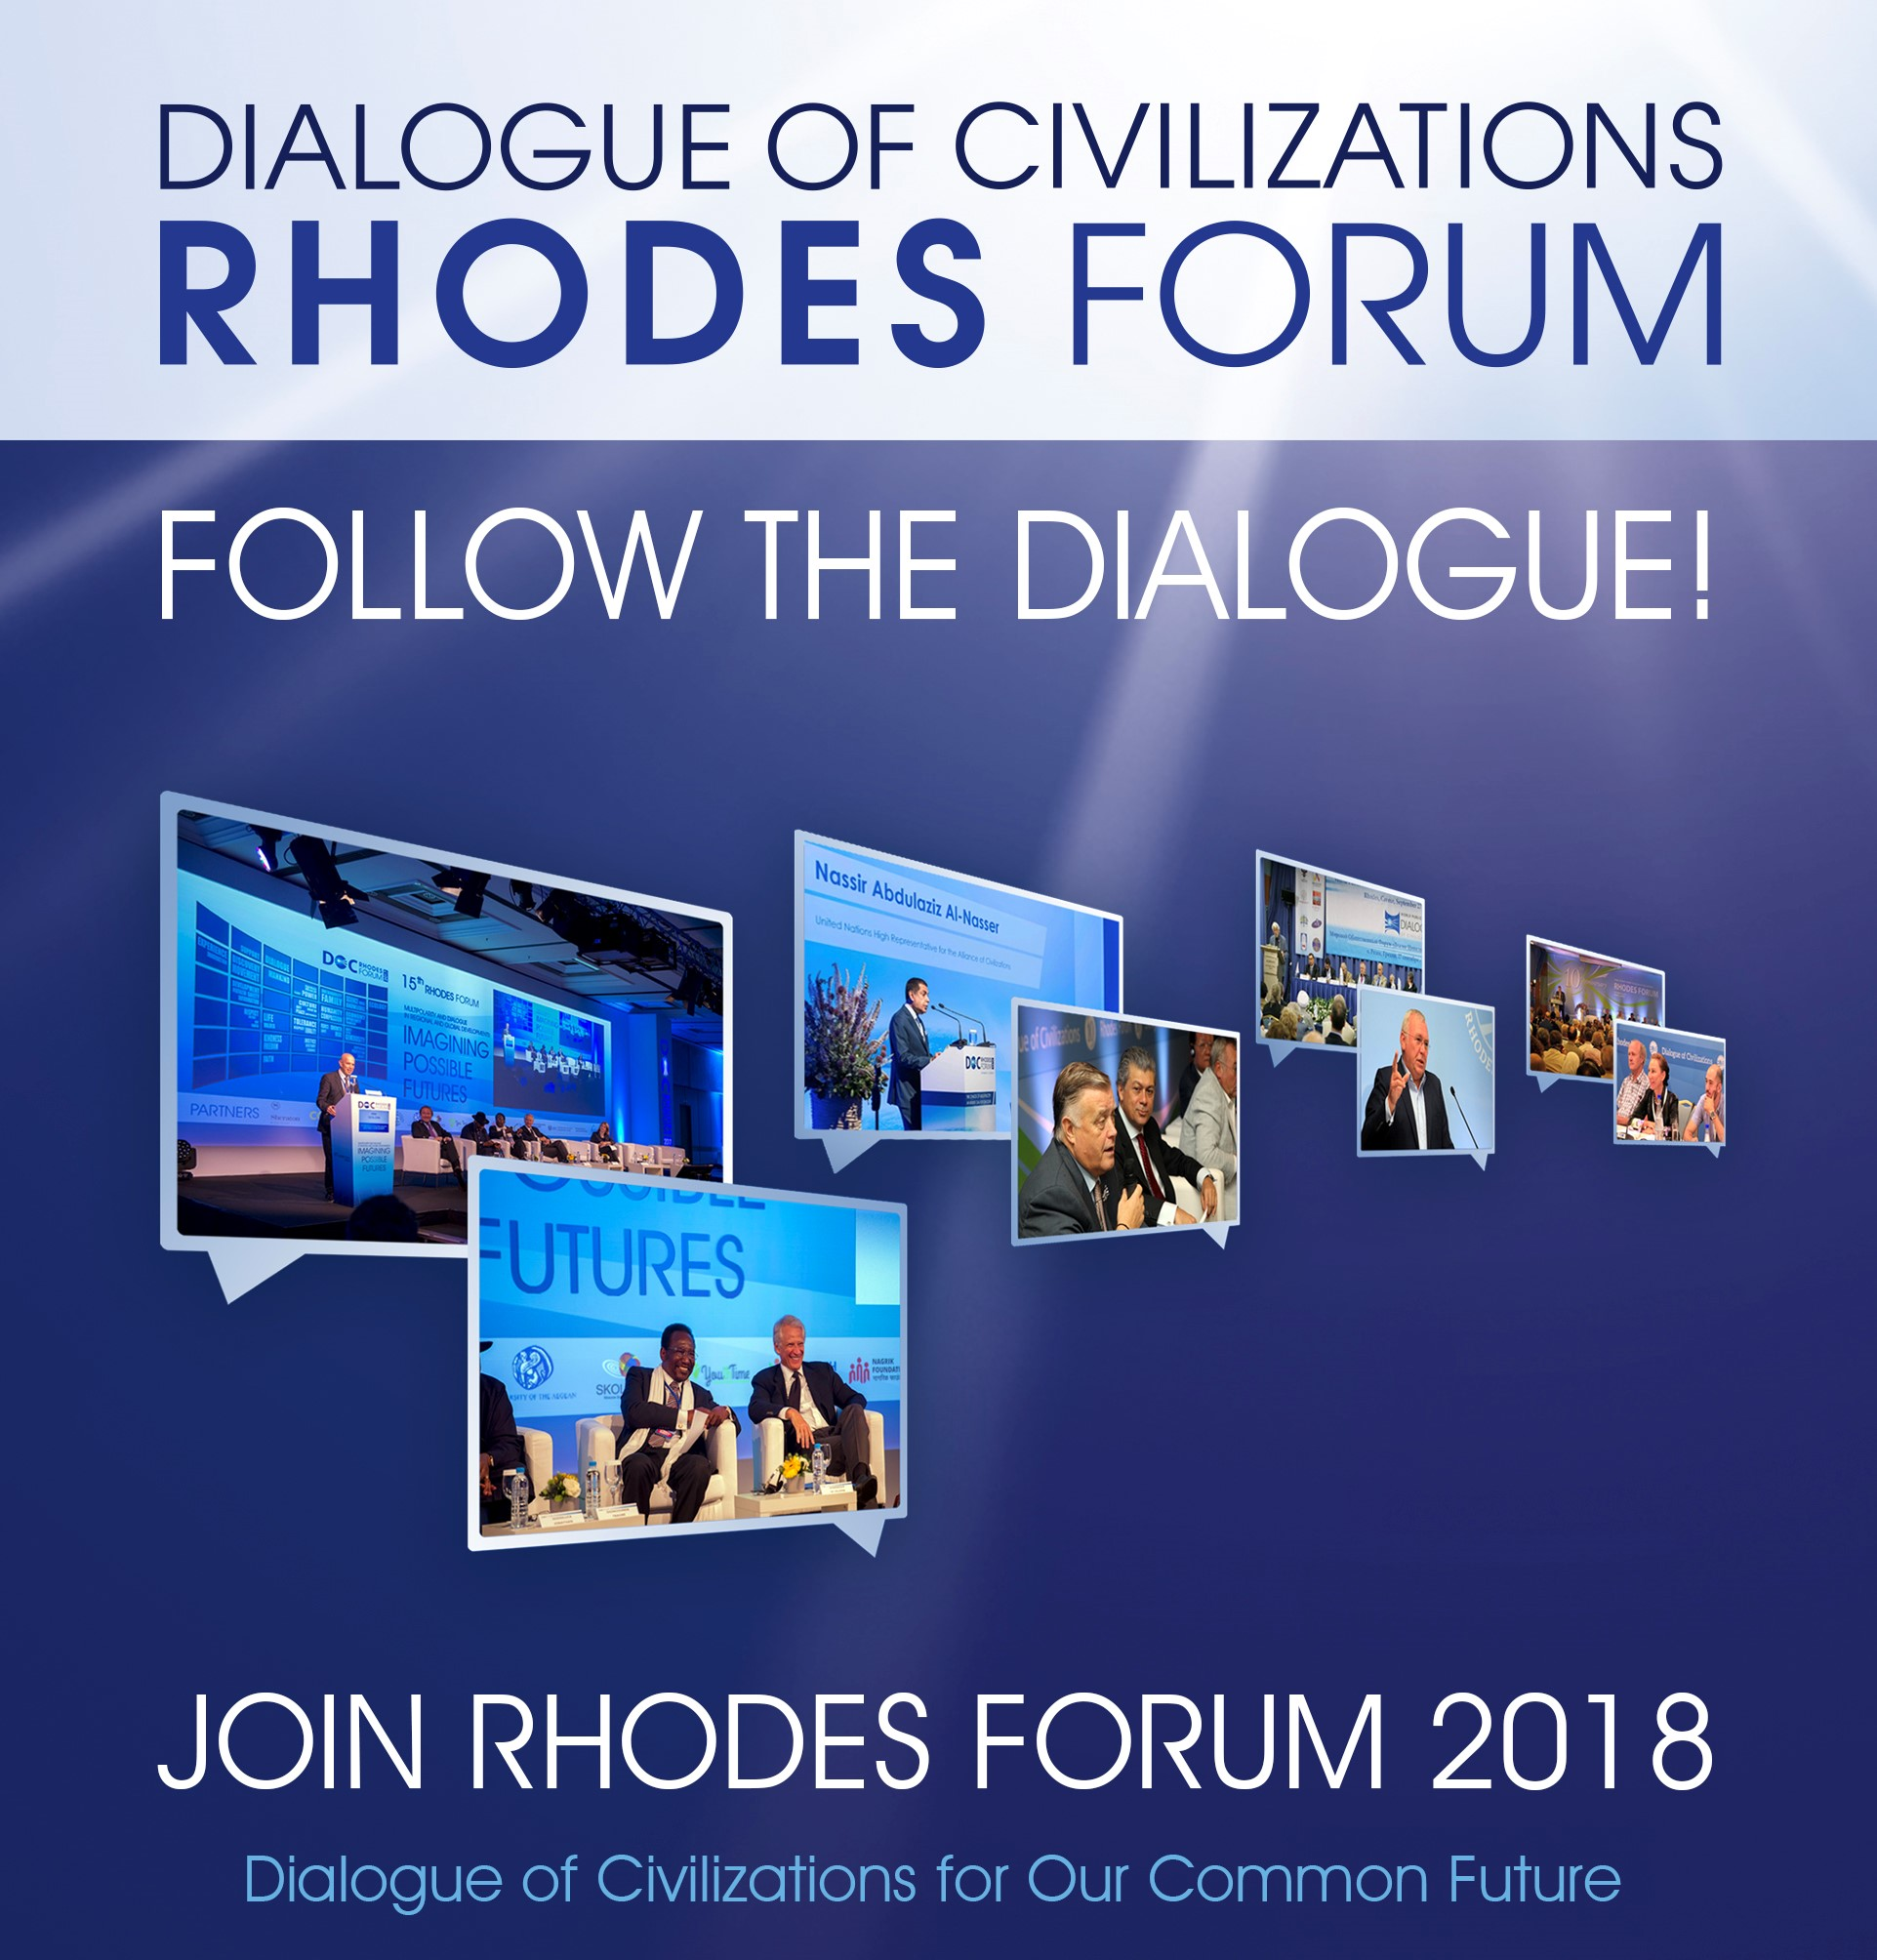 Rhodes Forum 2018: Making Multilateralism Work: Enhancing Dialogue on Peace, Security and Development